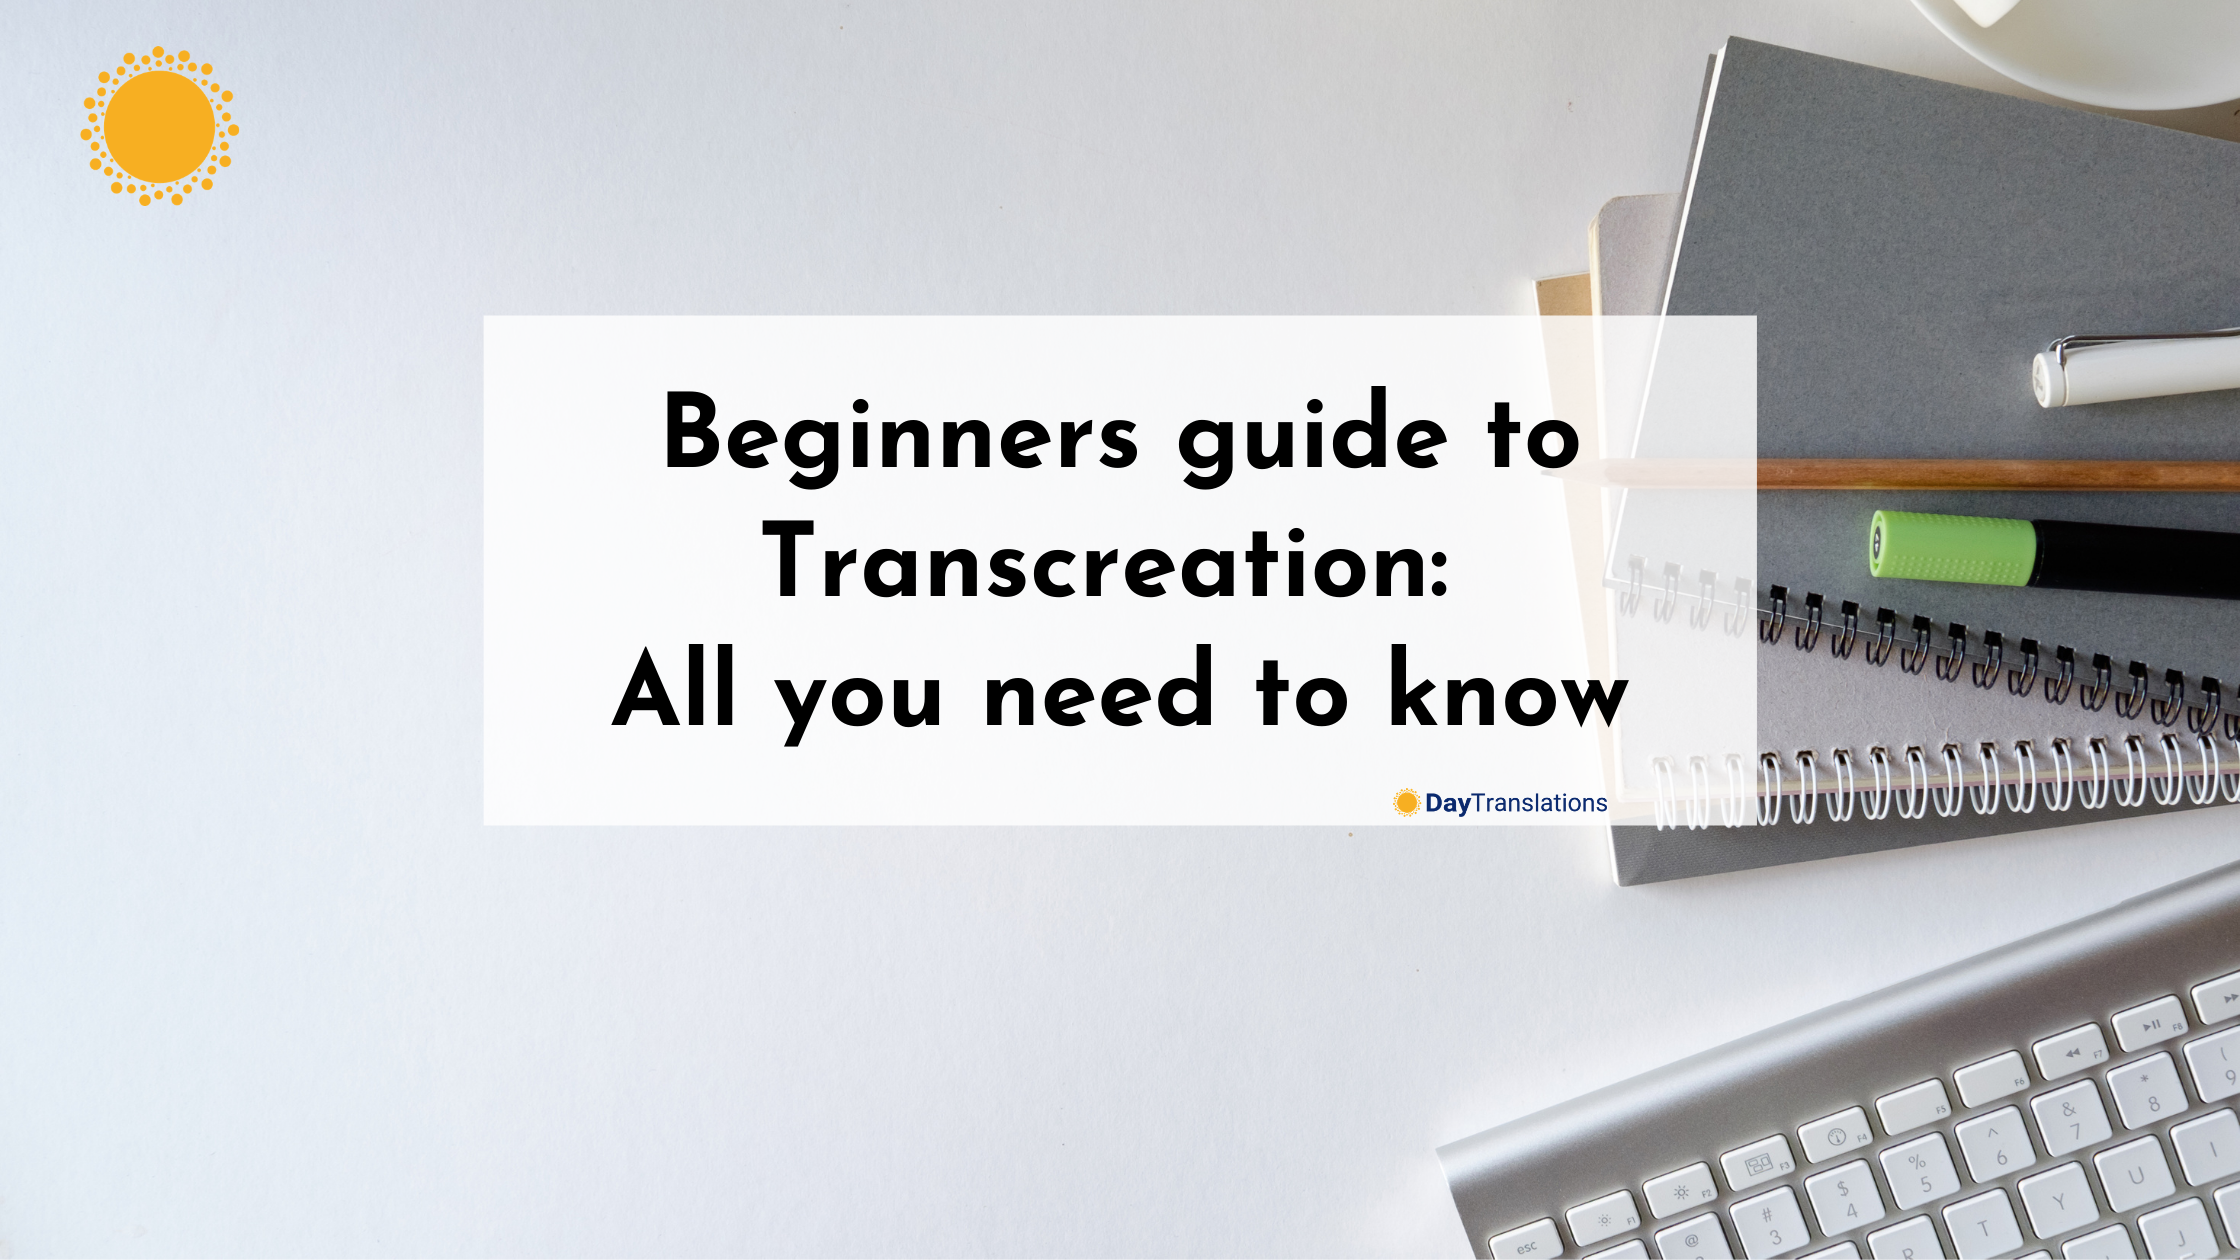 Beginners guide to transcreation: All you need to know